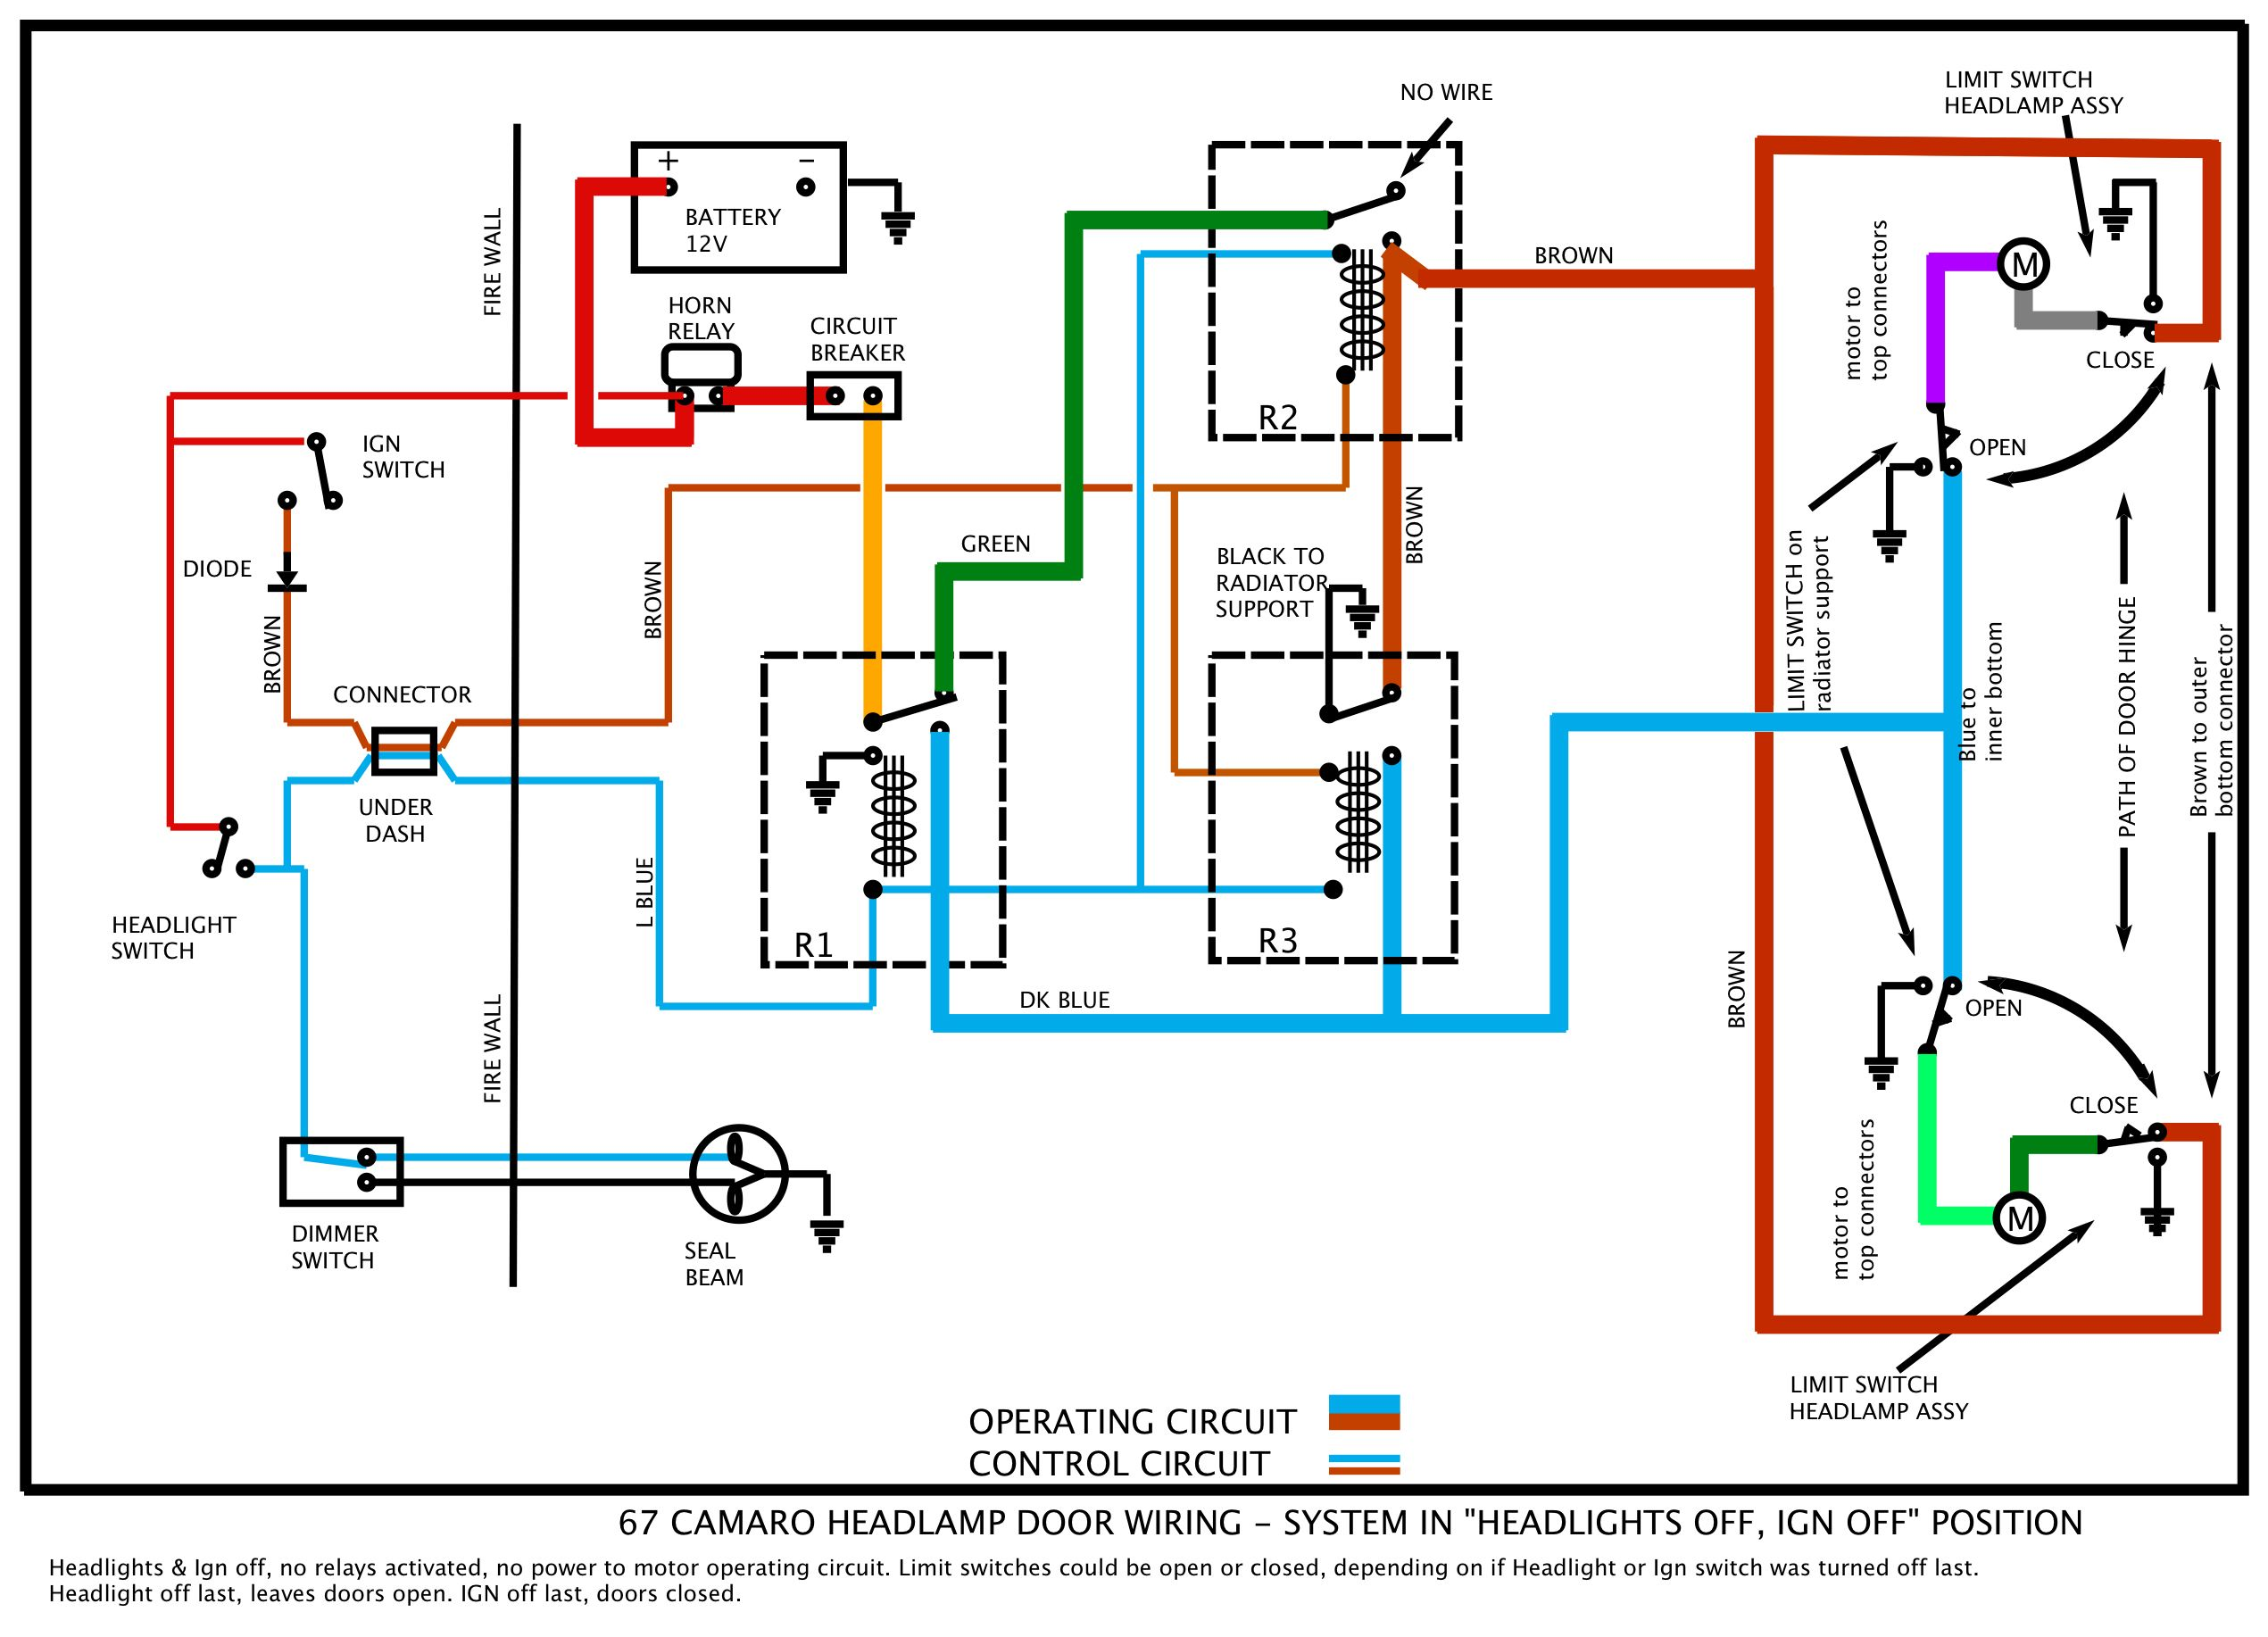 67_RS_HL_off_ign_off hl 220 motor wiring diagram 230v single phase wiring diagram, 220 swimming pool wiring diagram at readyjetset.co